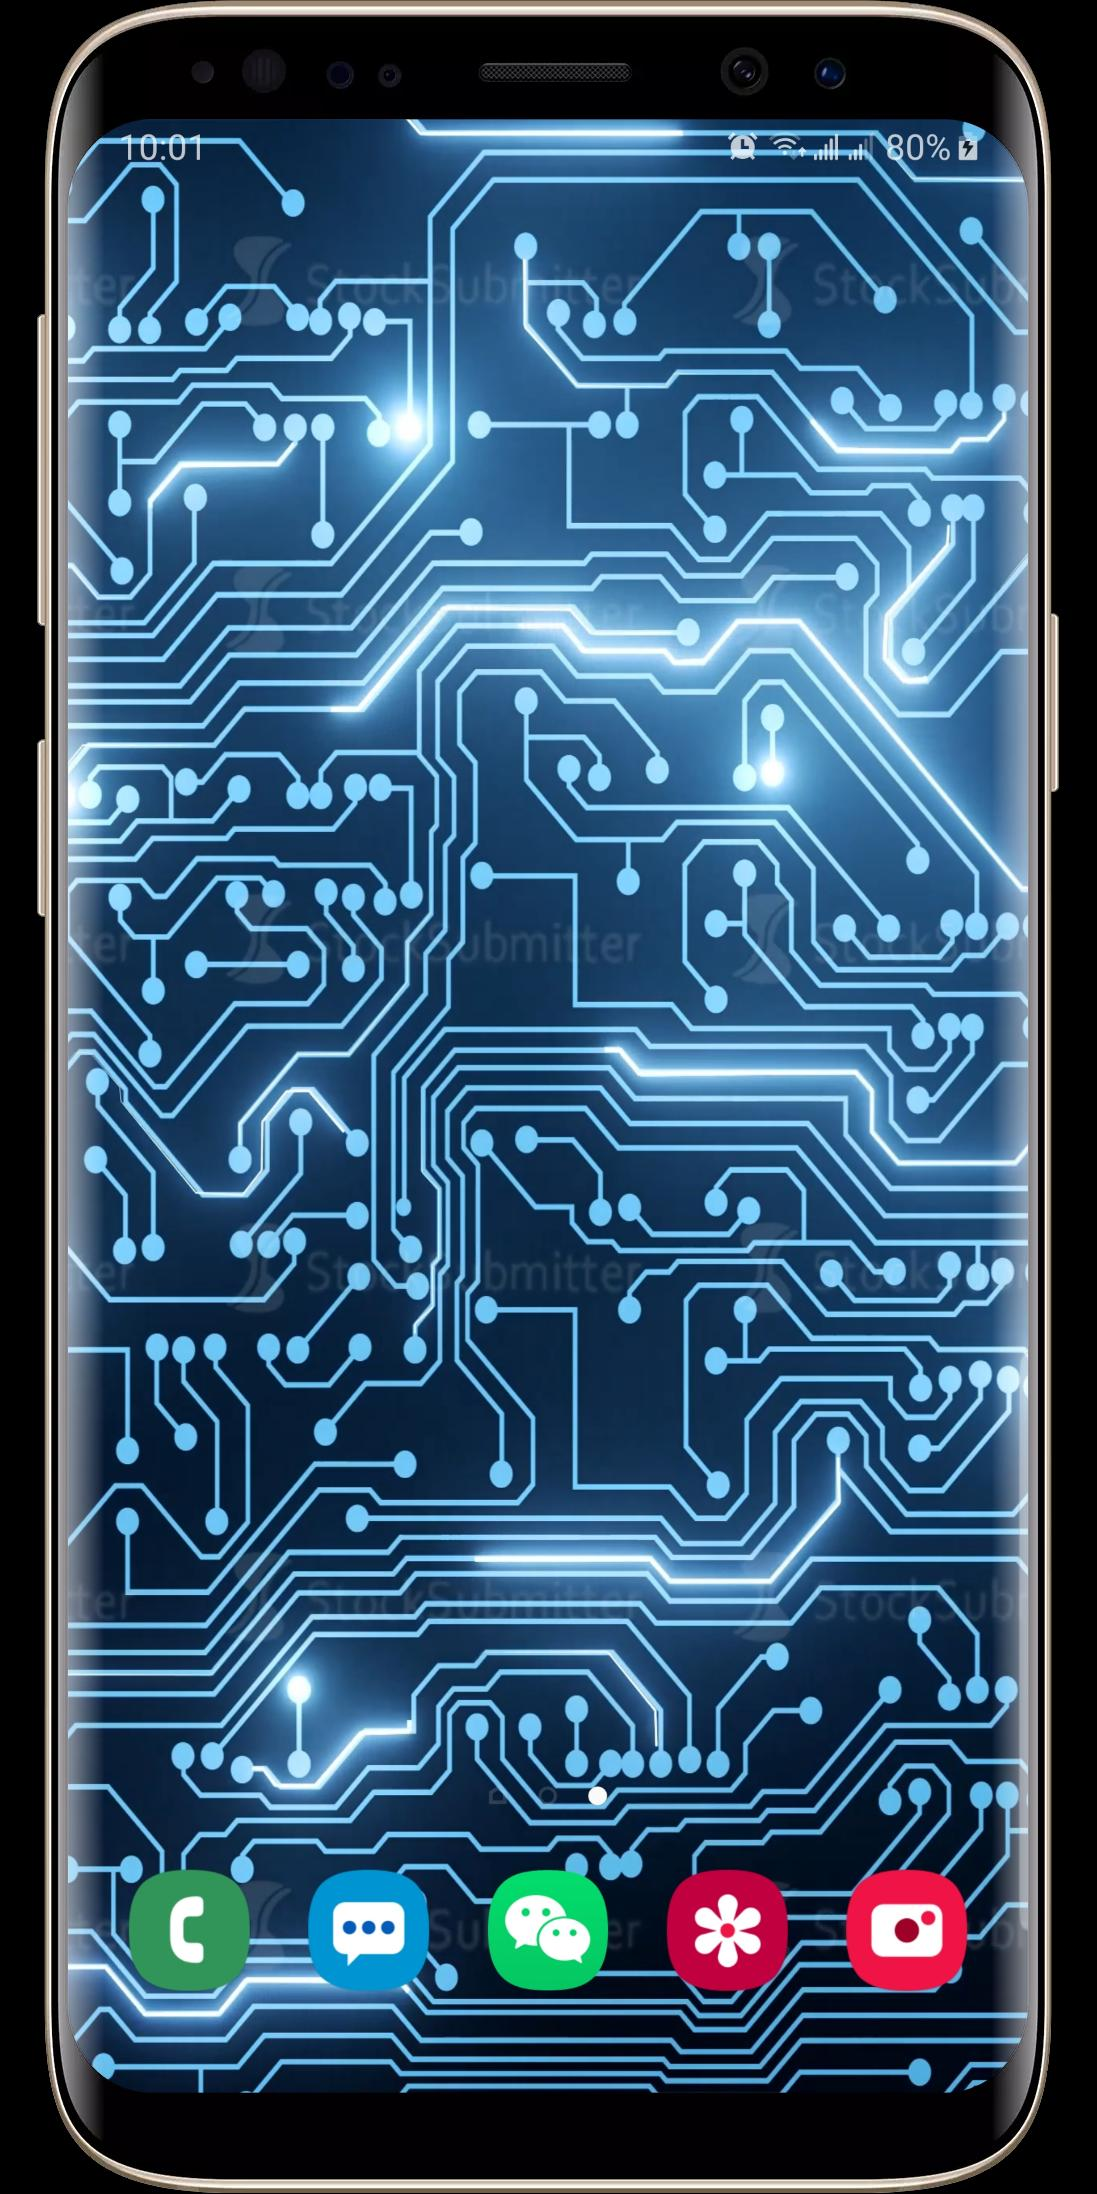 Digital Circuit Board Animation Live Wallpaper For Android Apk Download